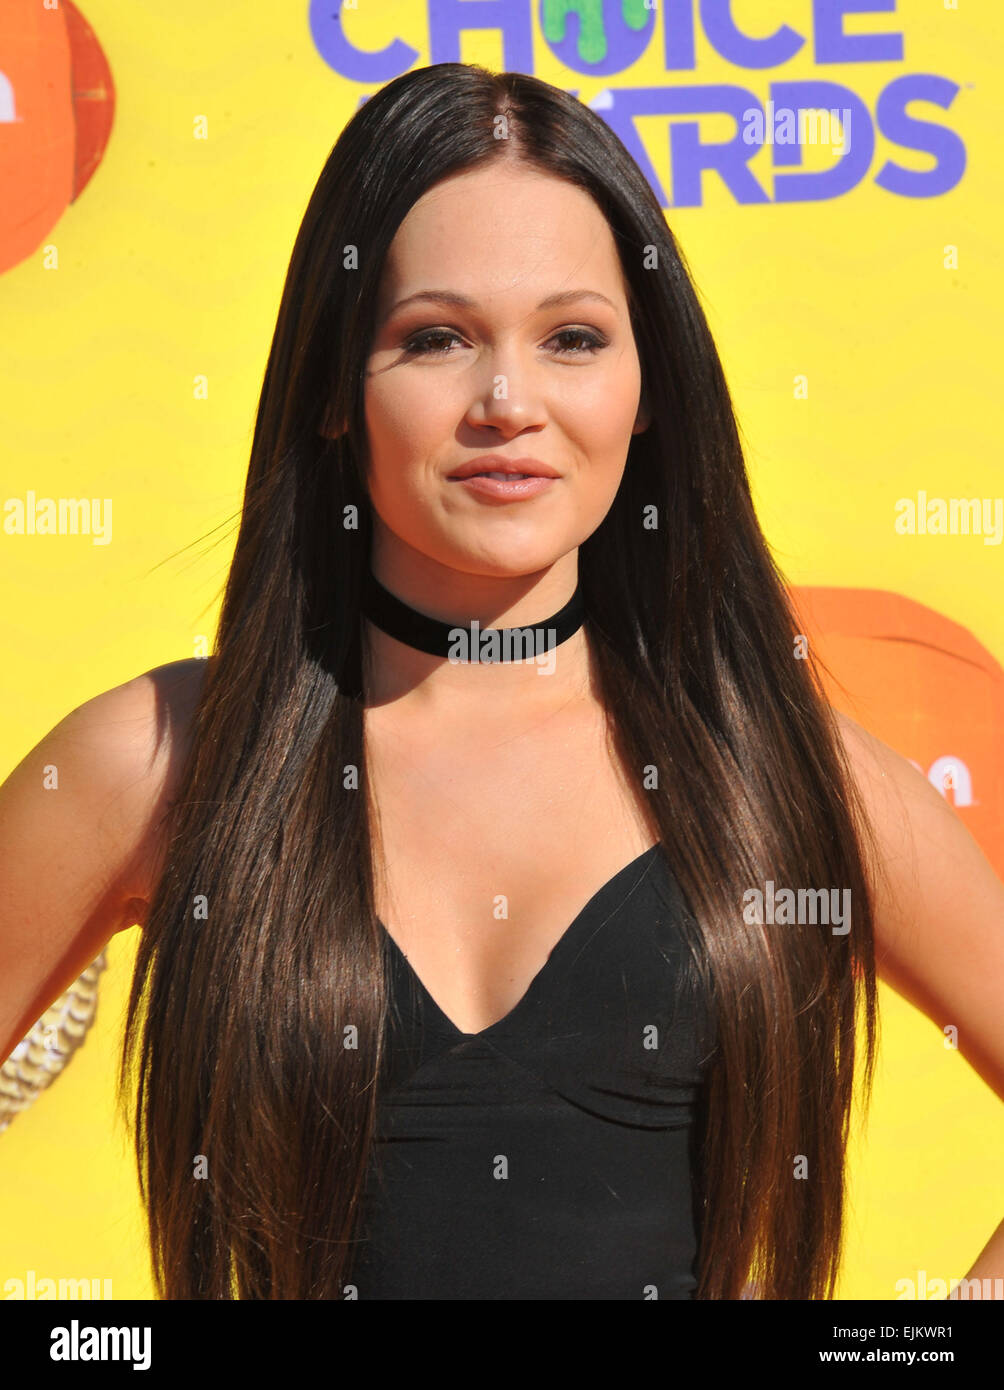 Kelli Berglund young hollywood